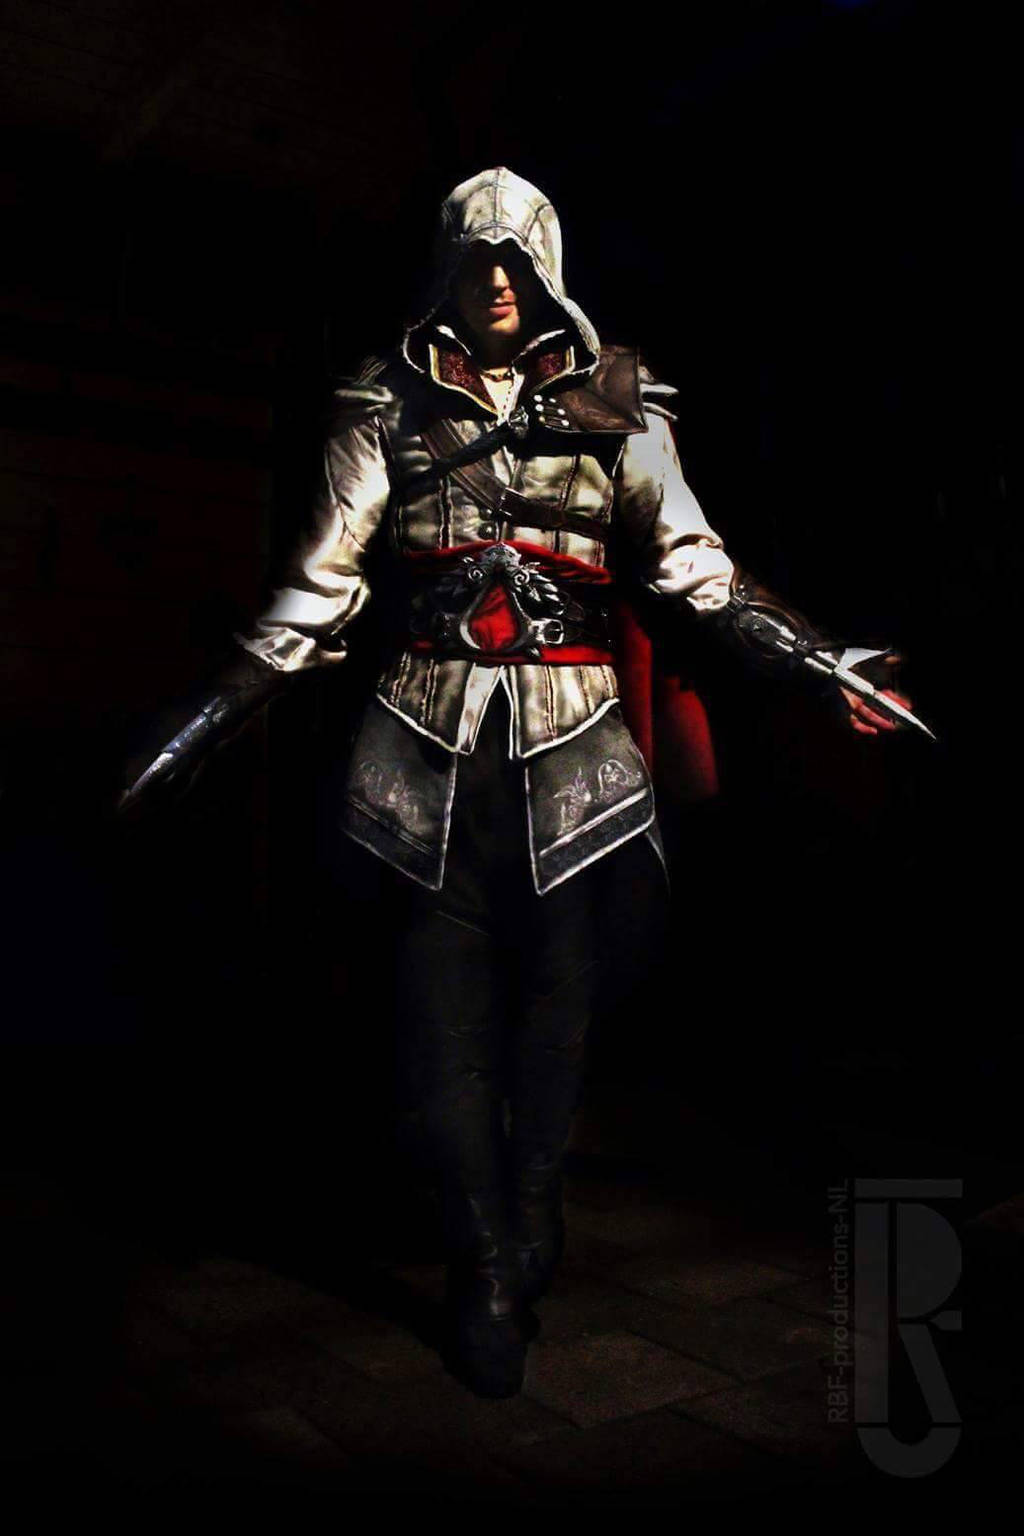 AC2 - Ezio Auditore Da Firenze Cosplay Costume by RBF-productions-NL